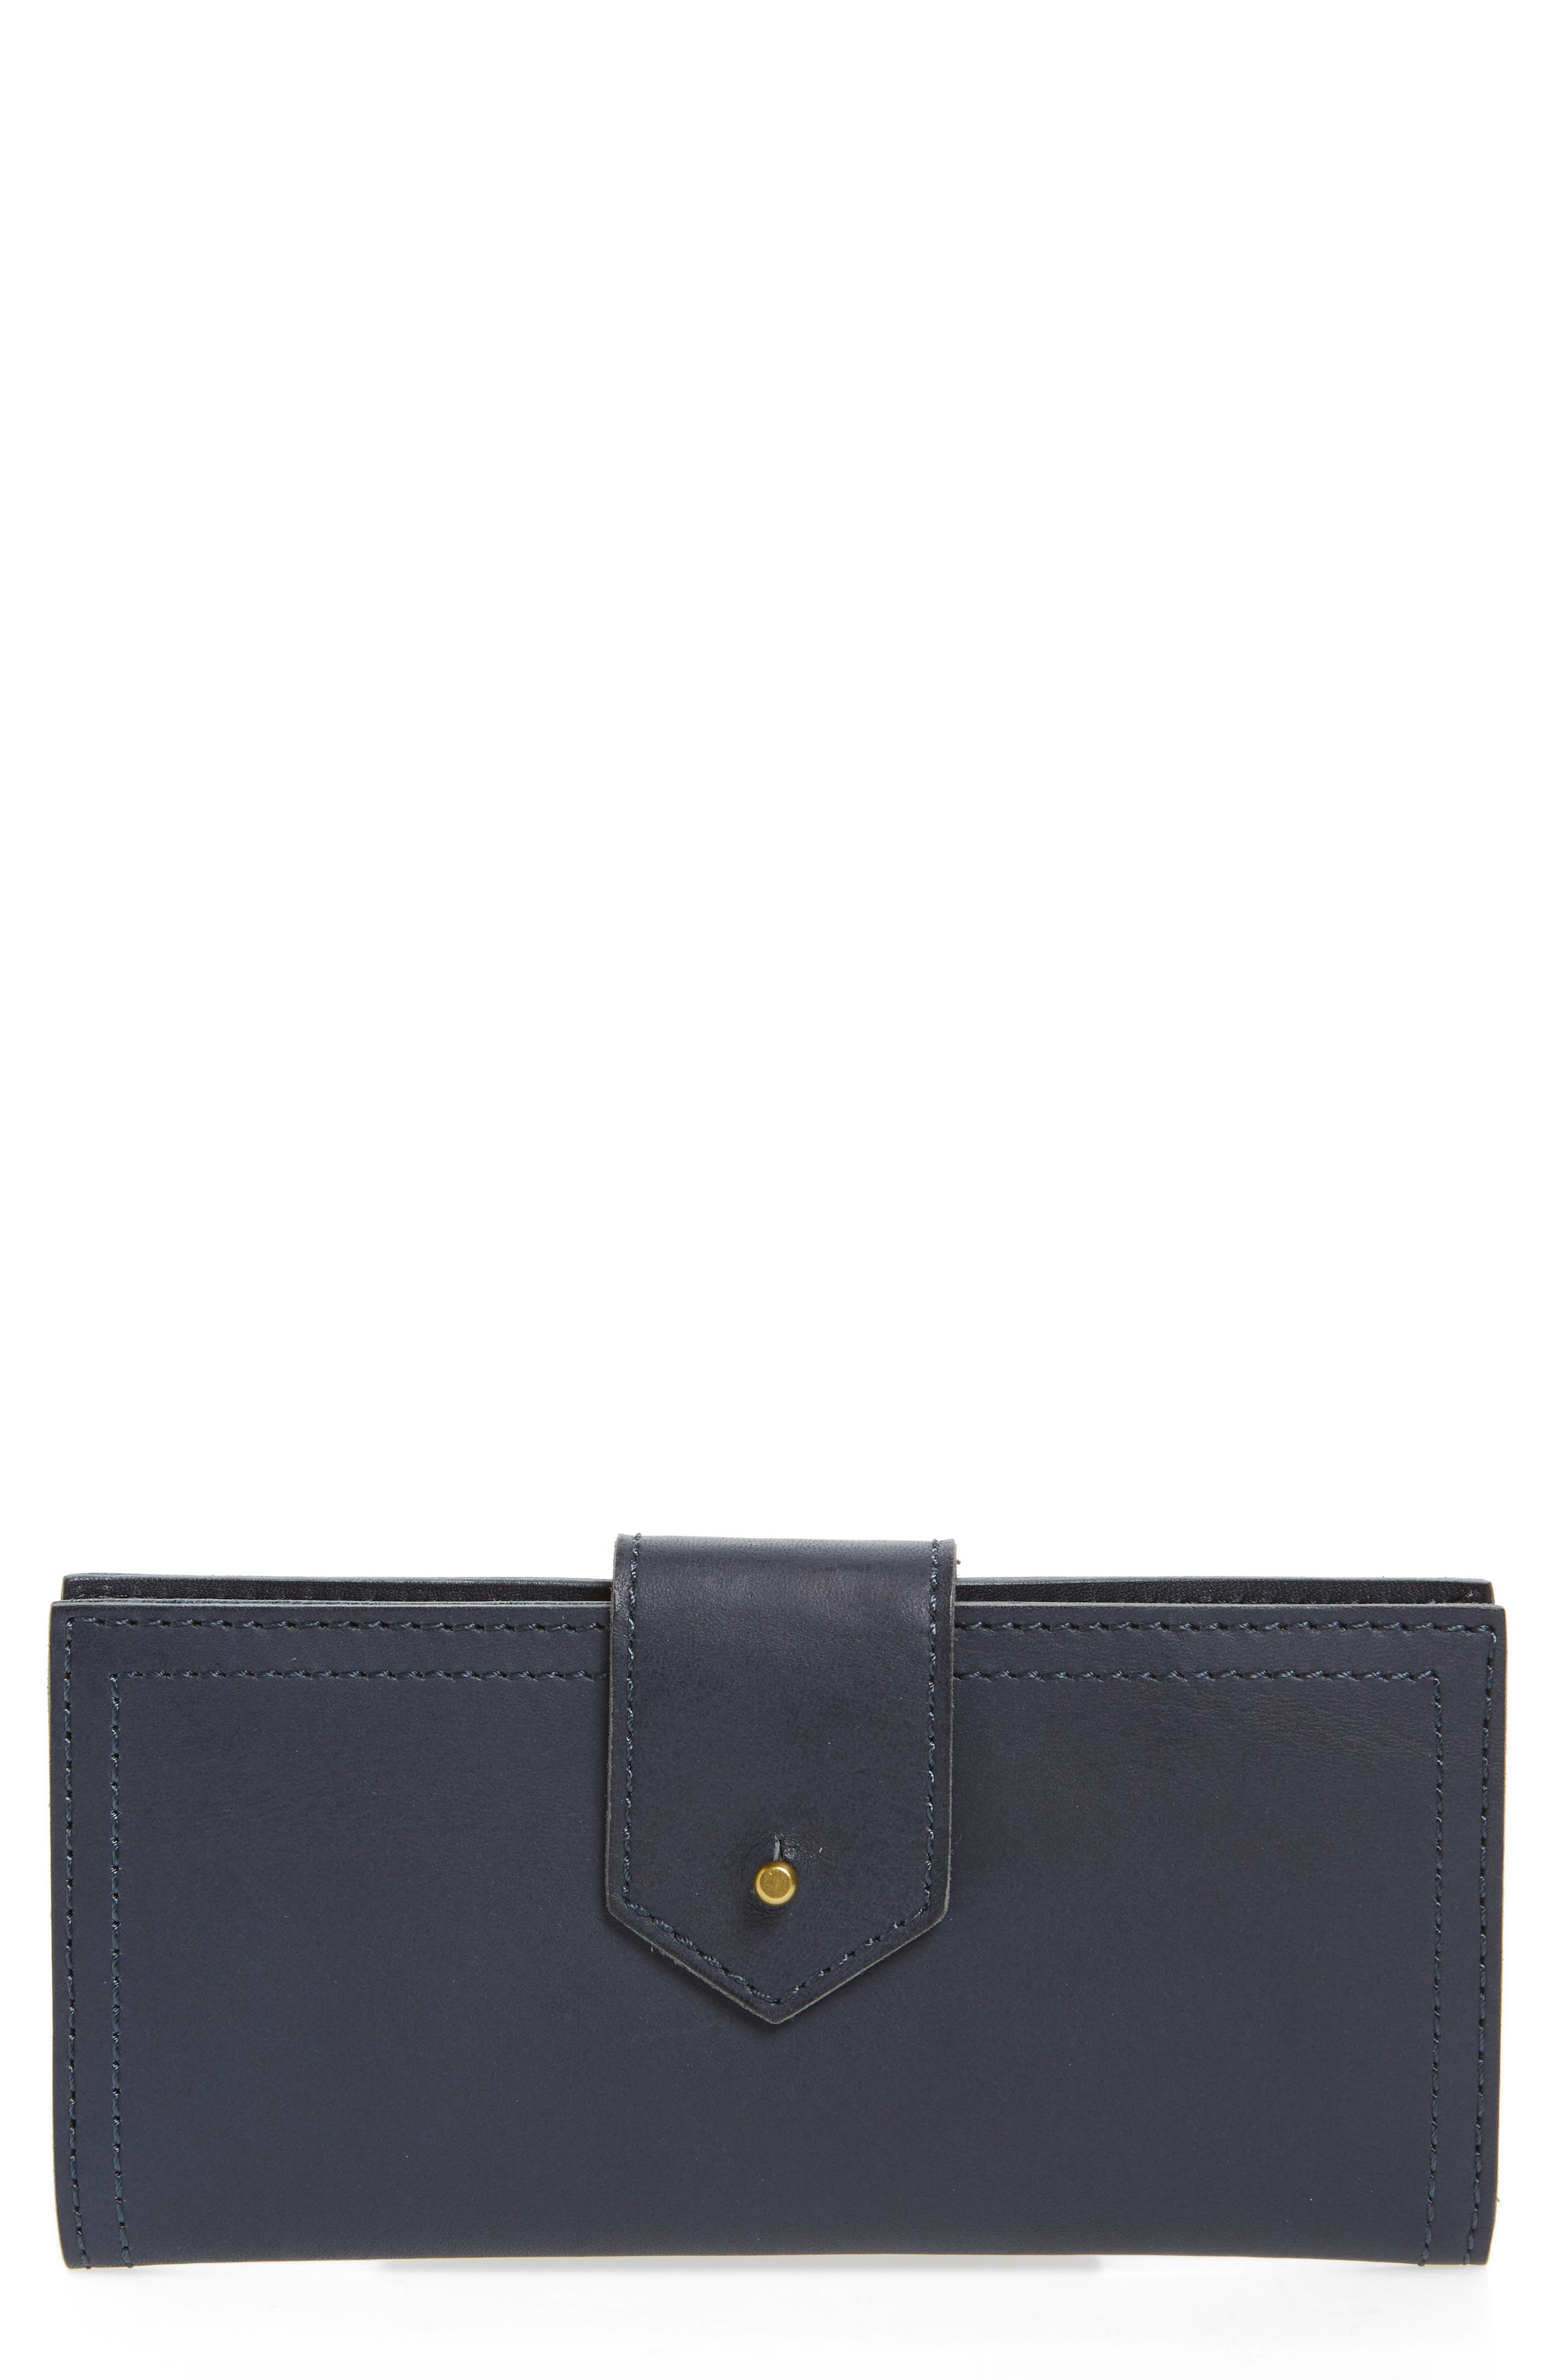 Alternate Image 1 Selected - Madewell The Post Leather Wallet